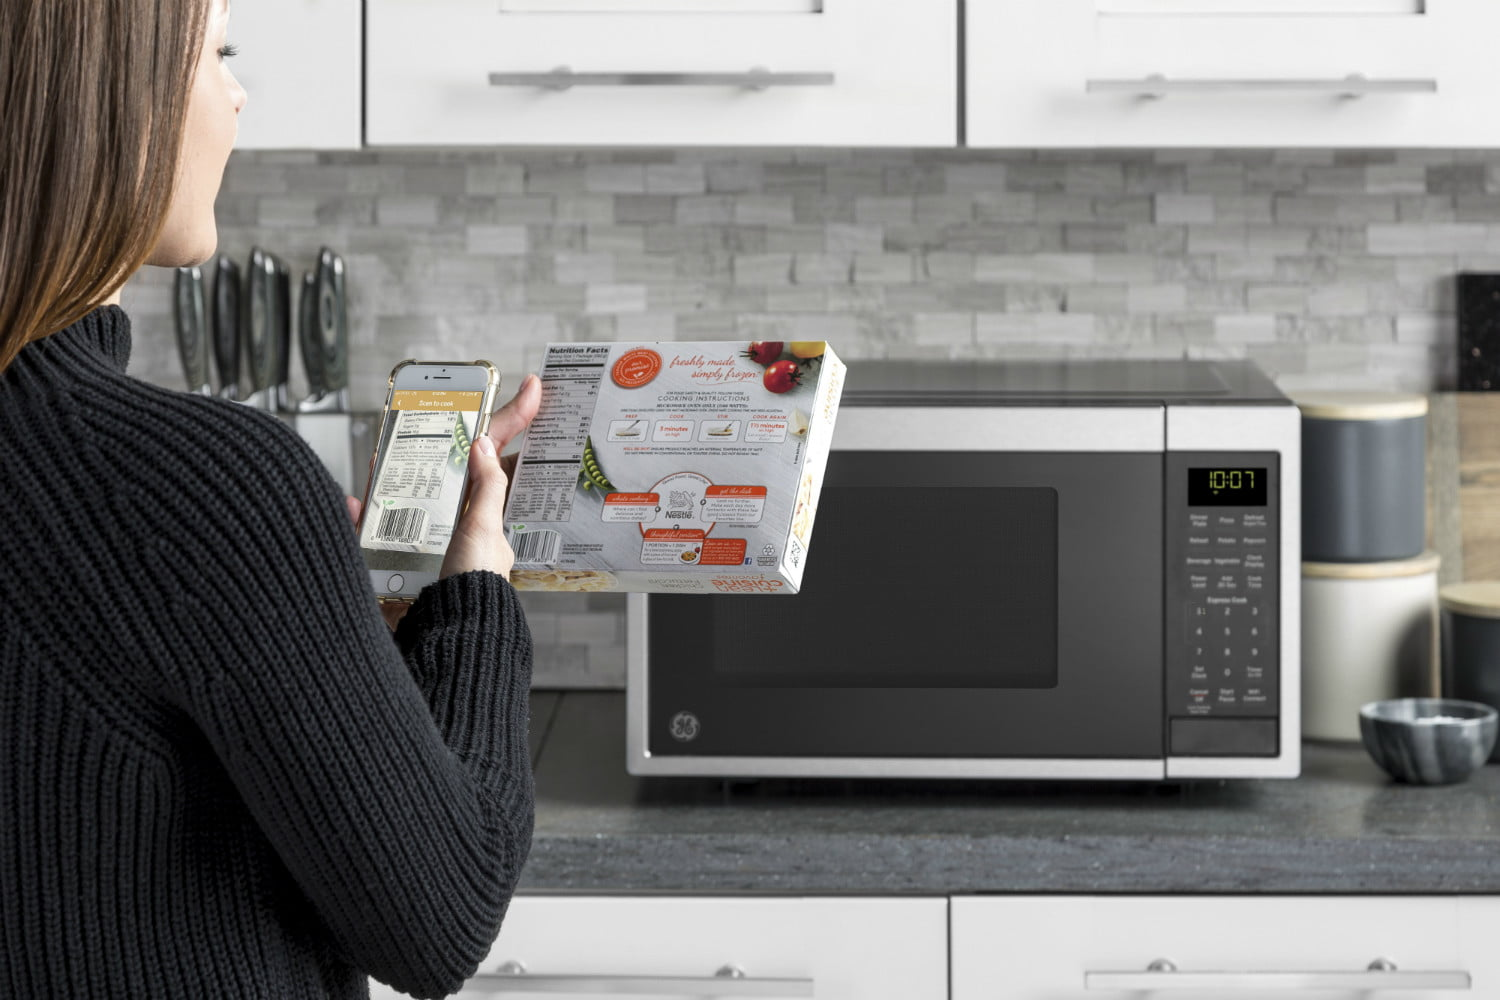 ge smart countertop microwave scan to cook technology with 03